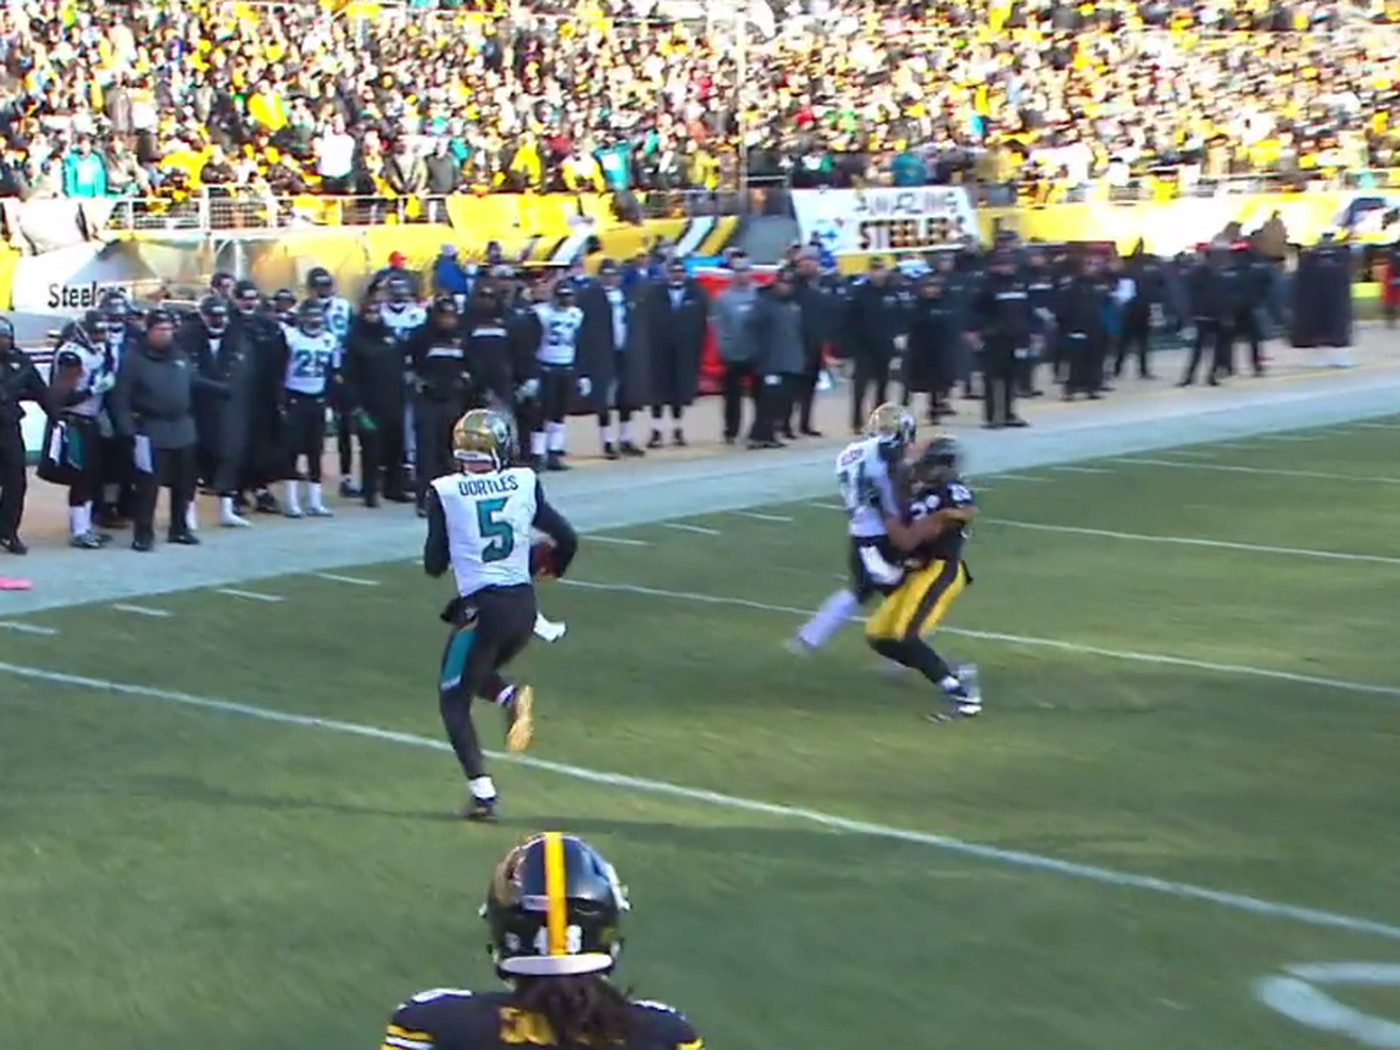 T J Yeldon Delivered A Crushing Block On Mike Mitchell At The Command Of Blake Bortles Sbnation Com